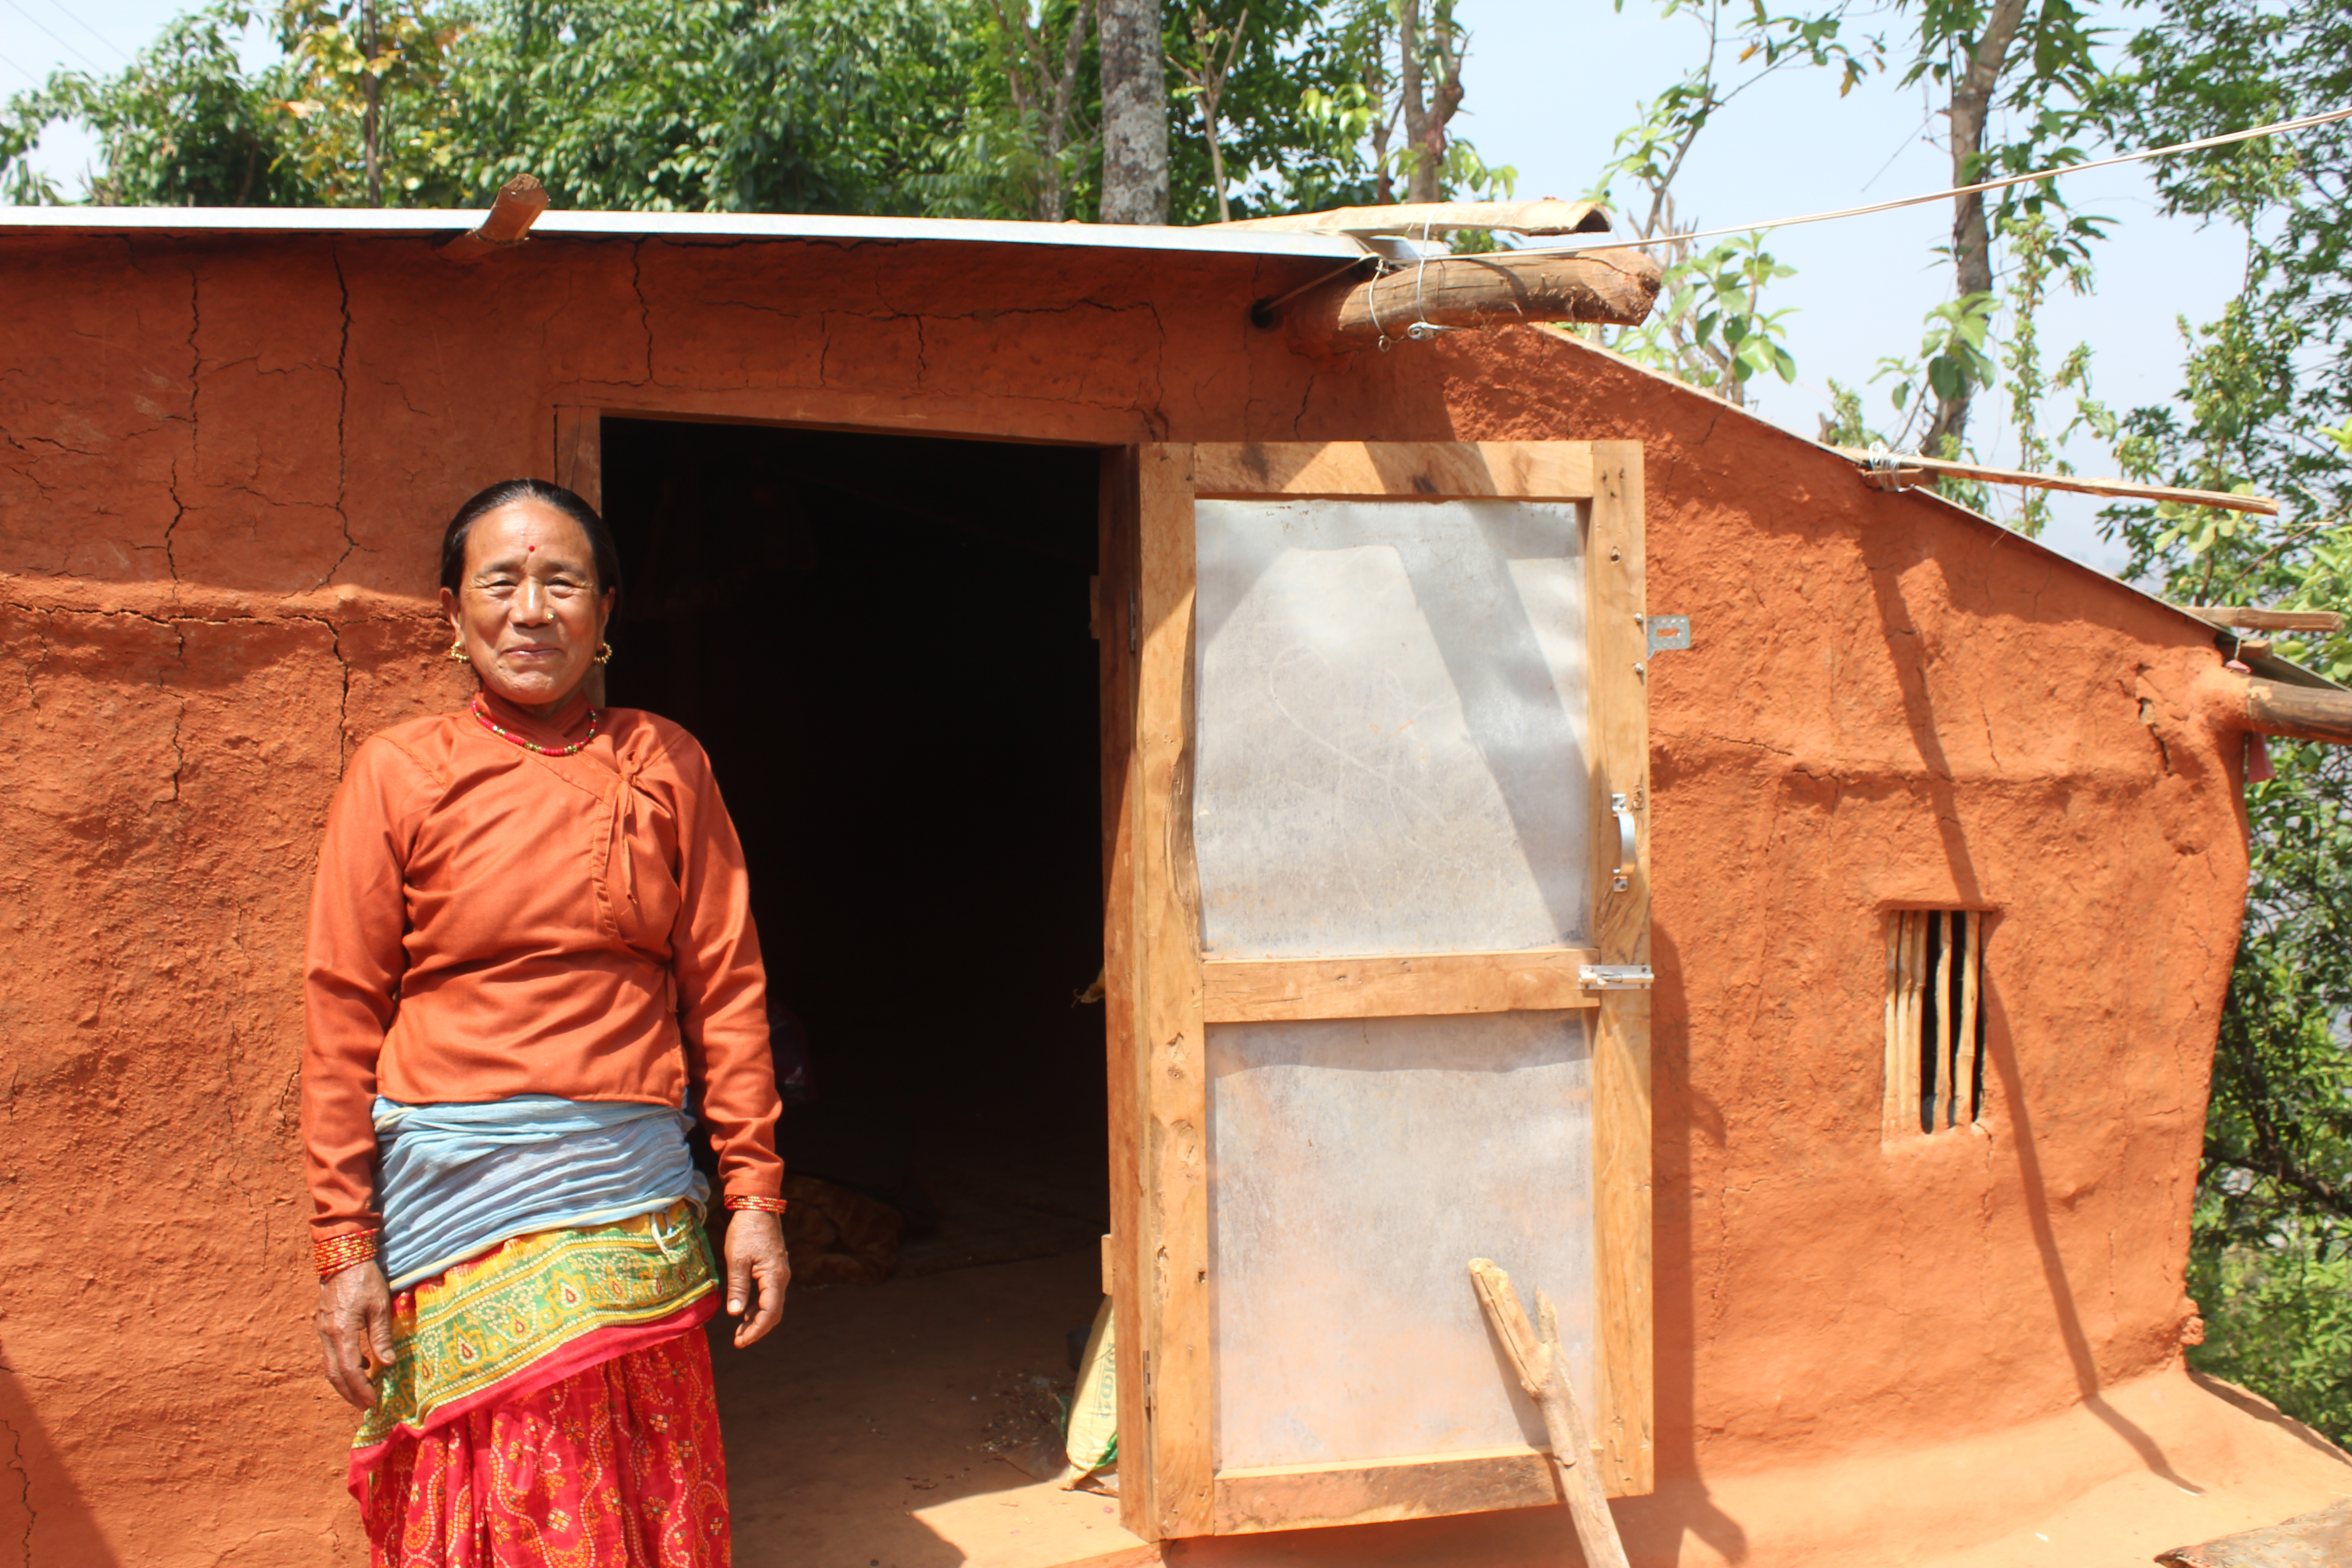 Kanchi stands outside her new house in Nepal.